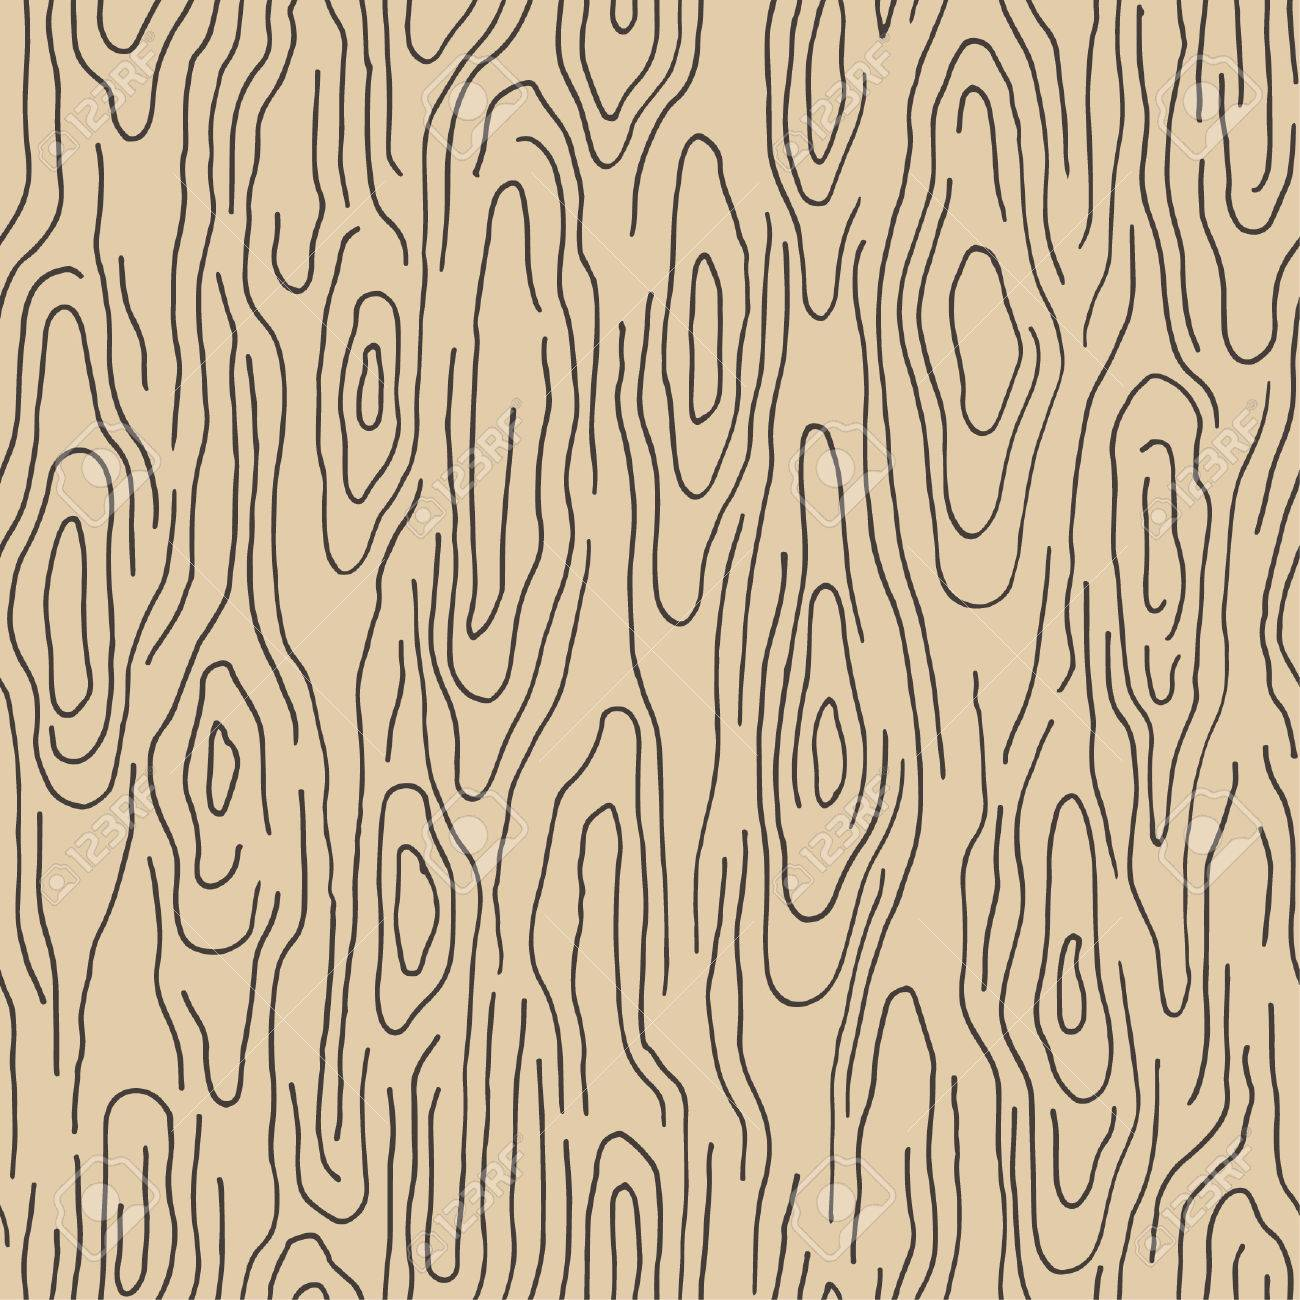 hight resolution of 1300x1300 seamless hand drawn wood texture royalty free cliparts vectors